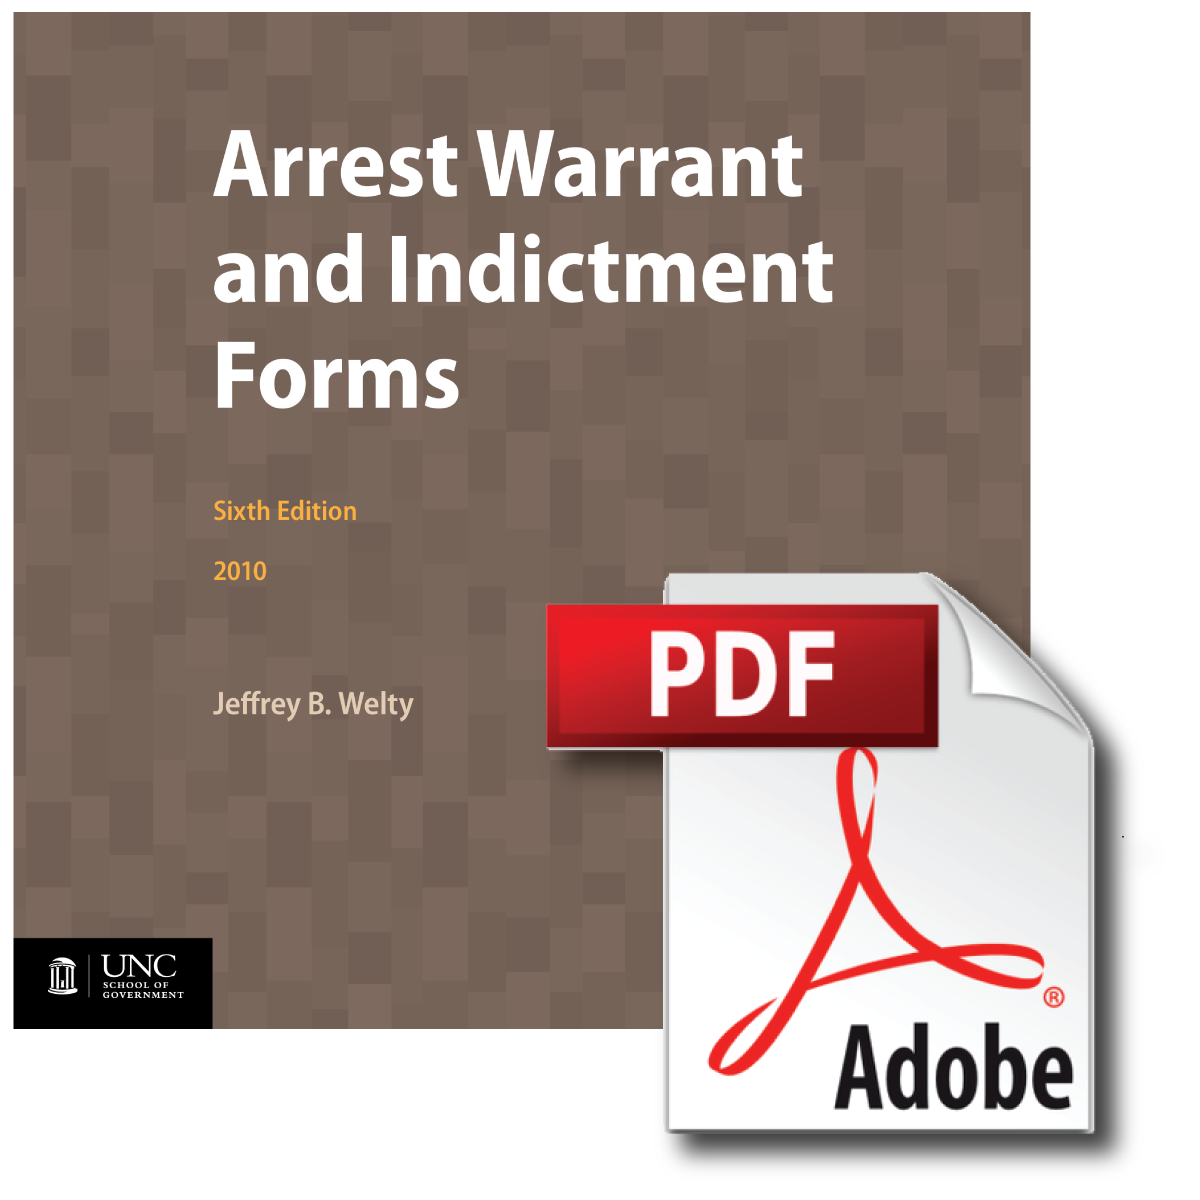 Cover image for 2013 Update to Arrest Warrant and Indictment Forms, Sixth Edition, 2010 (Free PDF)